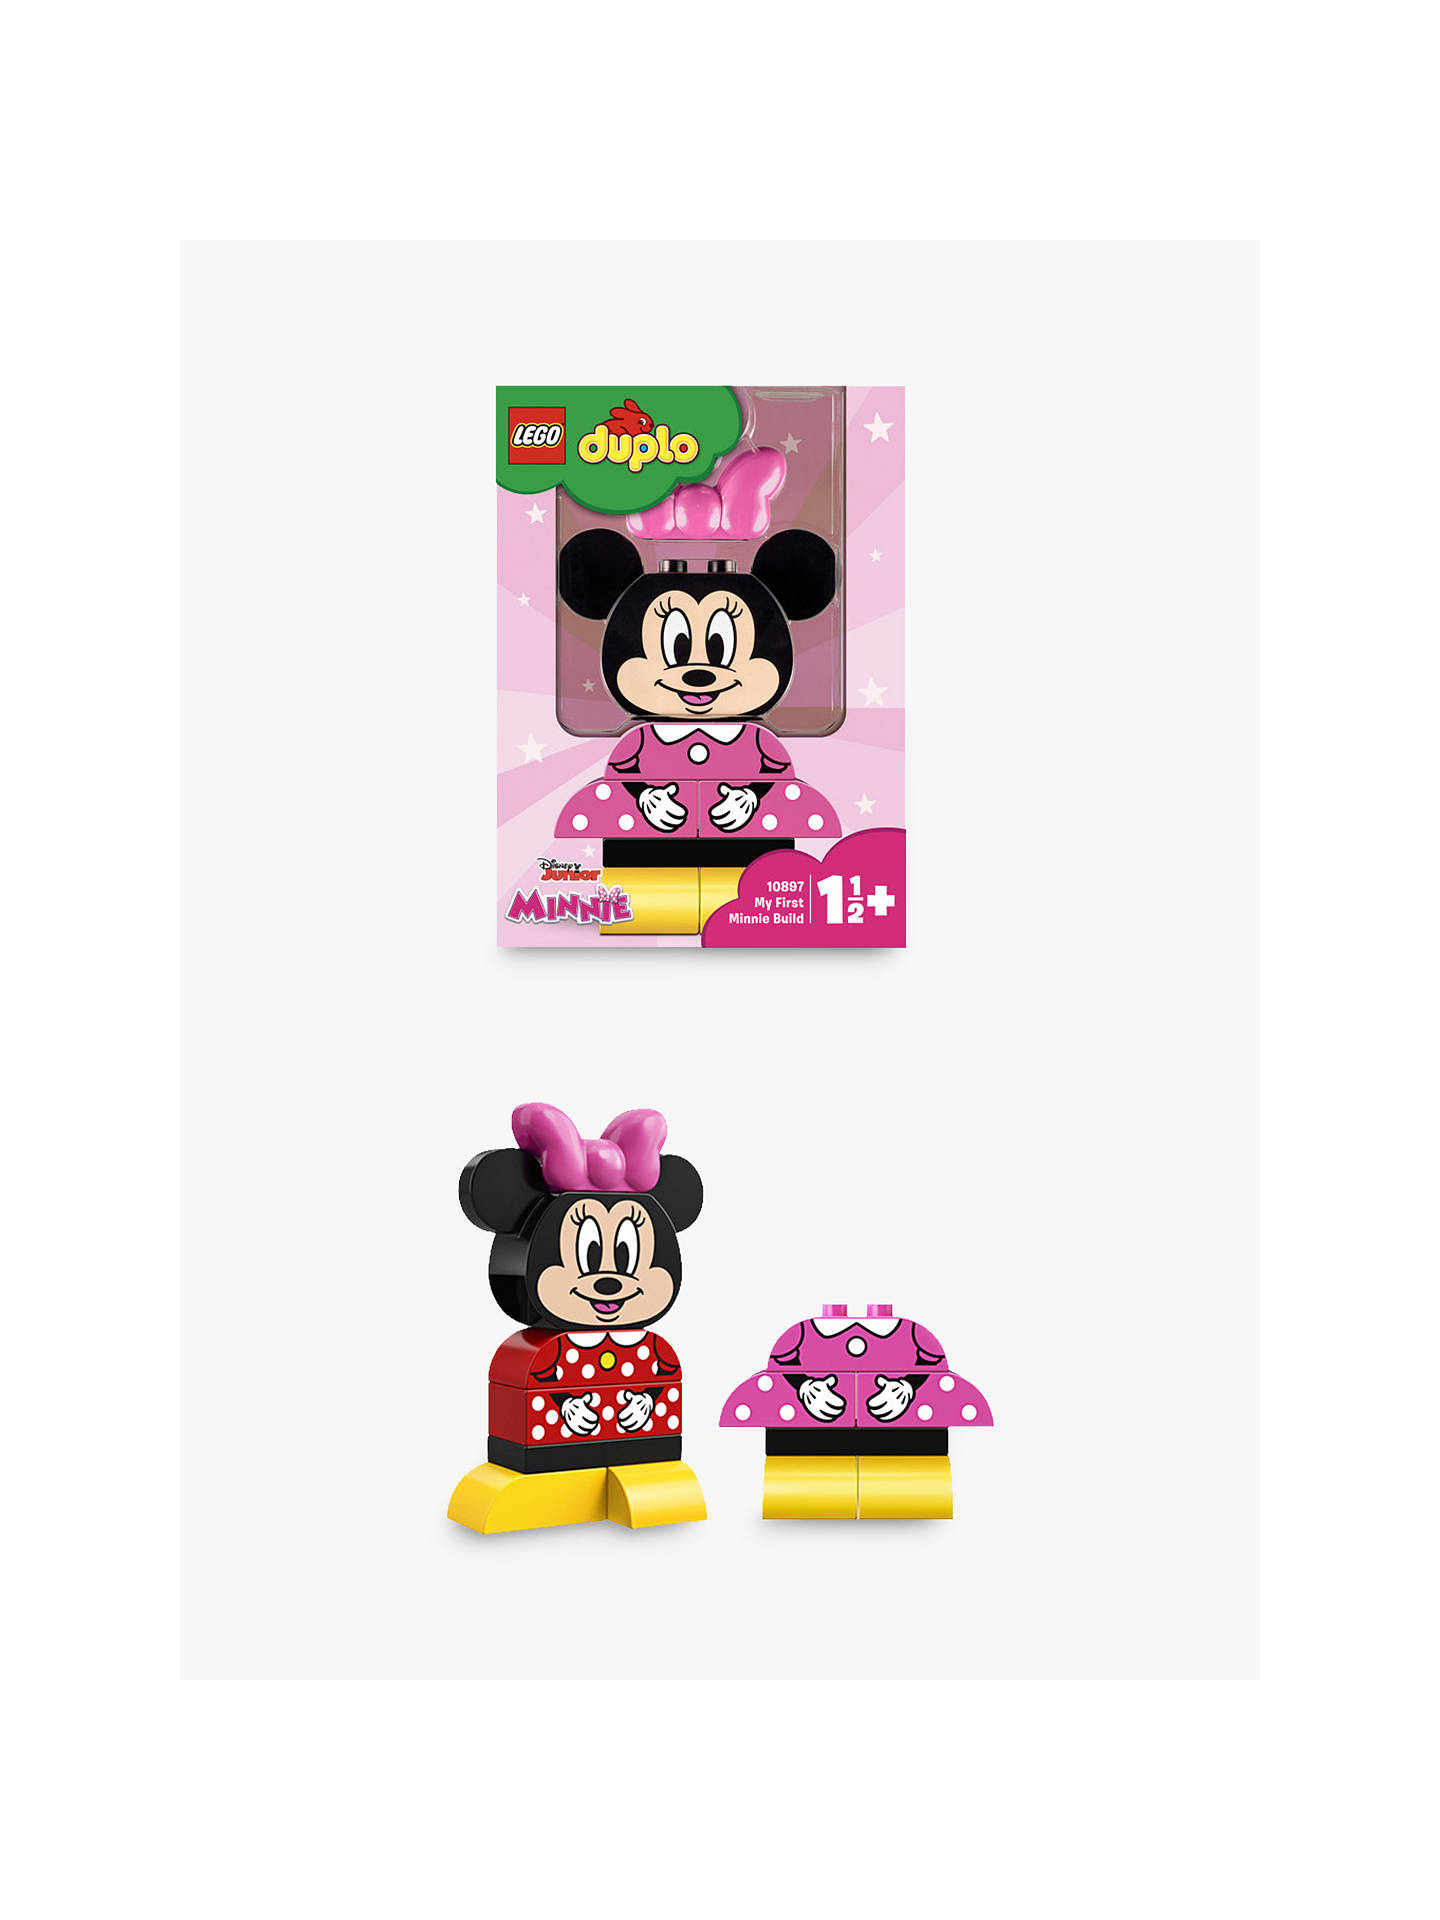 Lego Duplo 10897 My First Minnie Build Minnie Mouse Toy For 1 2 Yrs